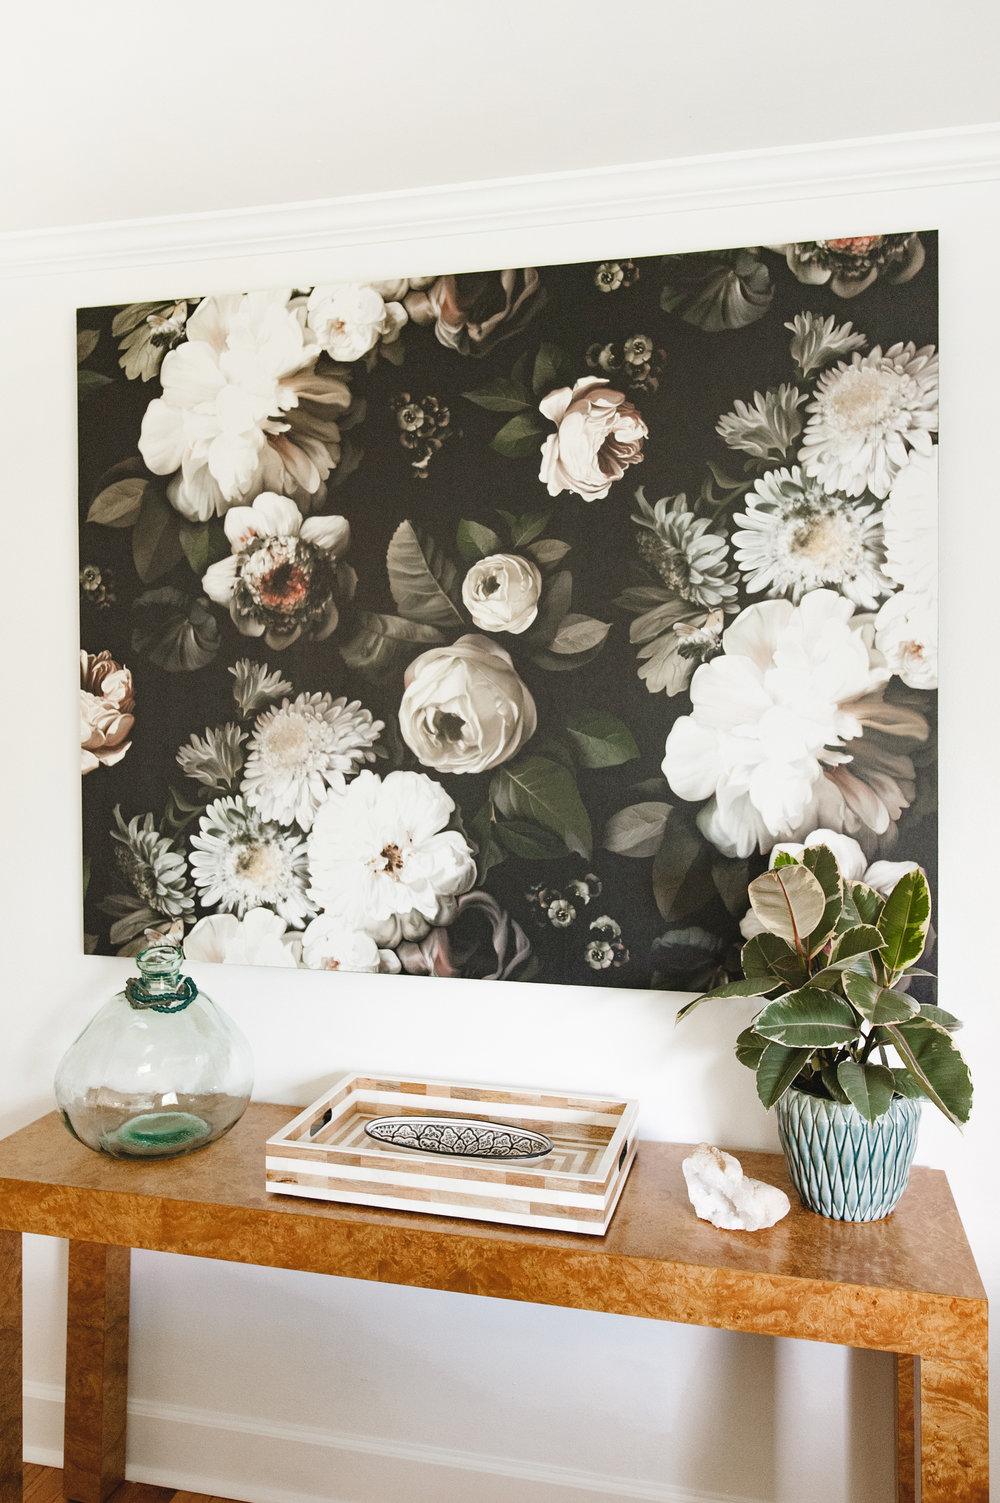 DIY Artwork: Wallpaper Without the Commitment